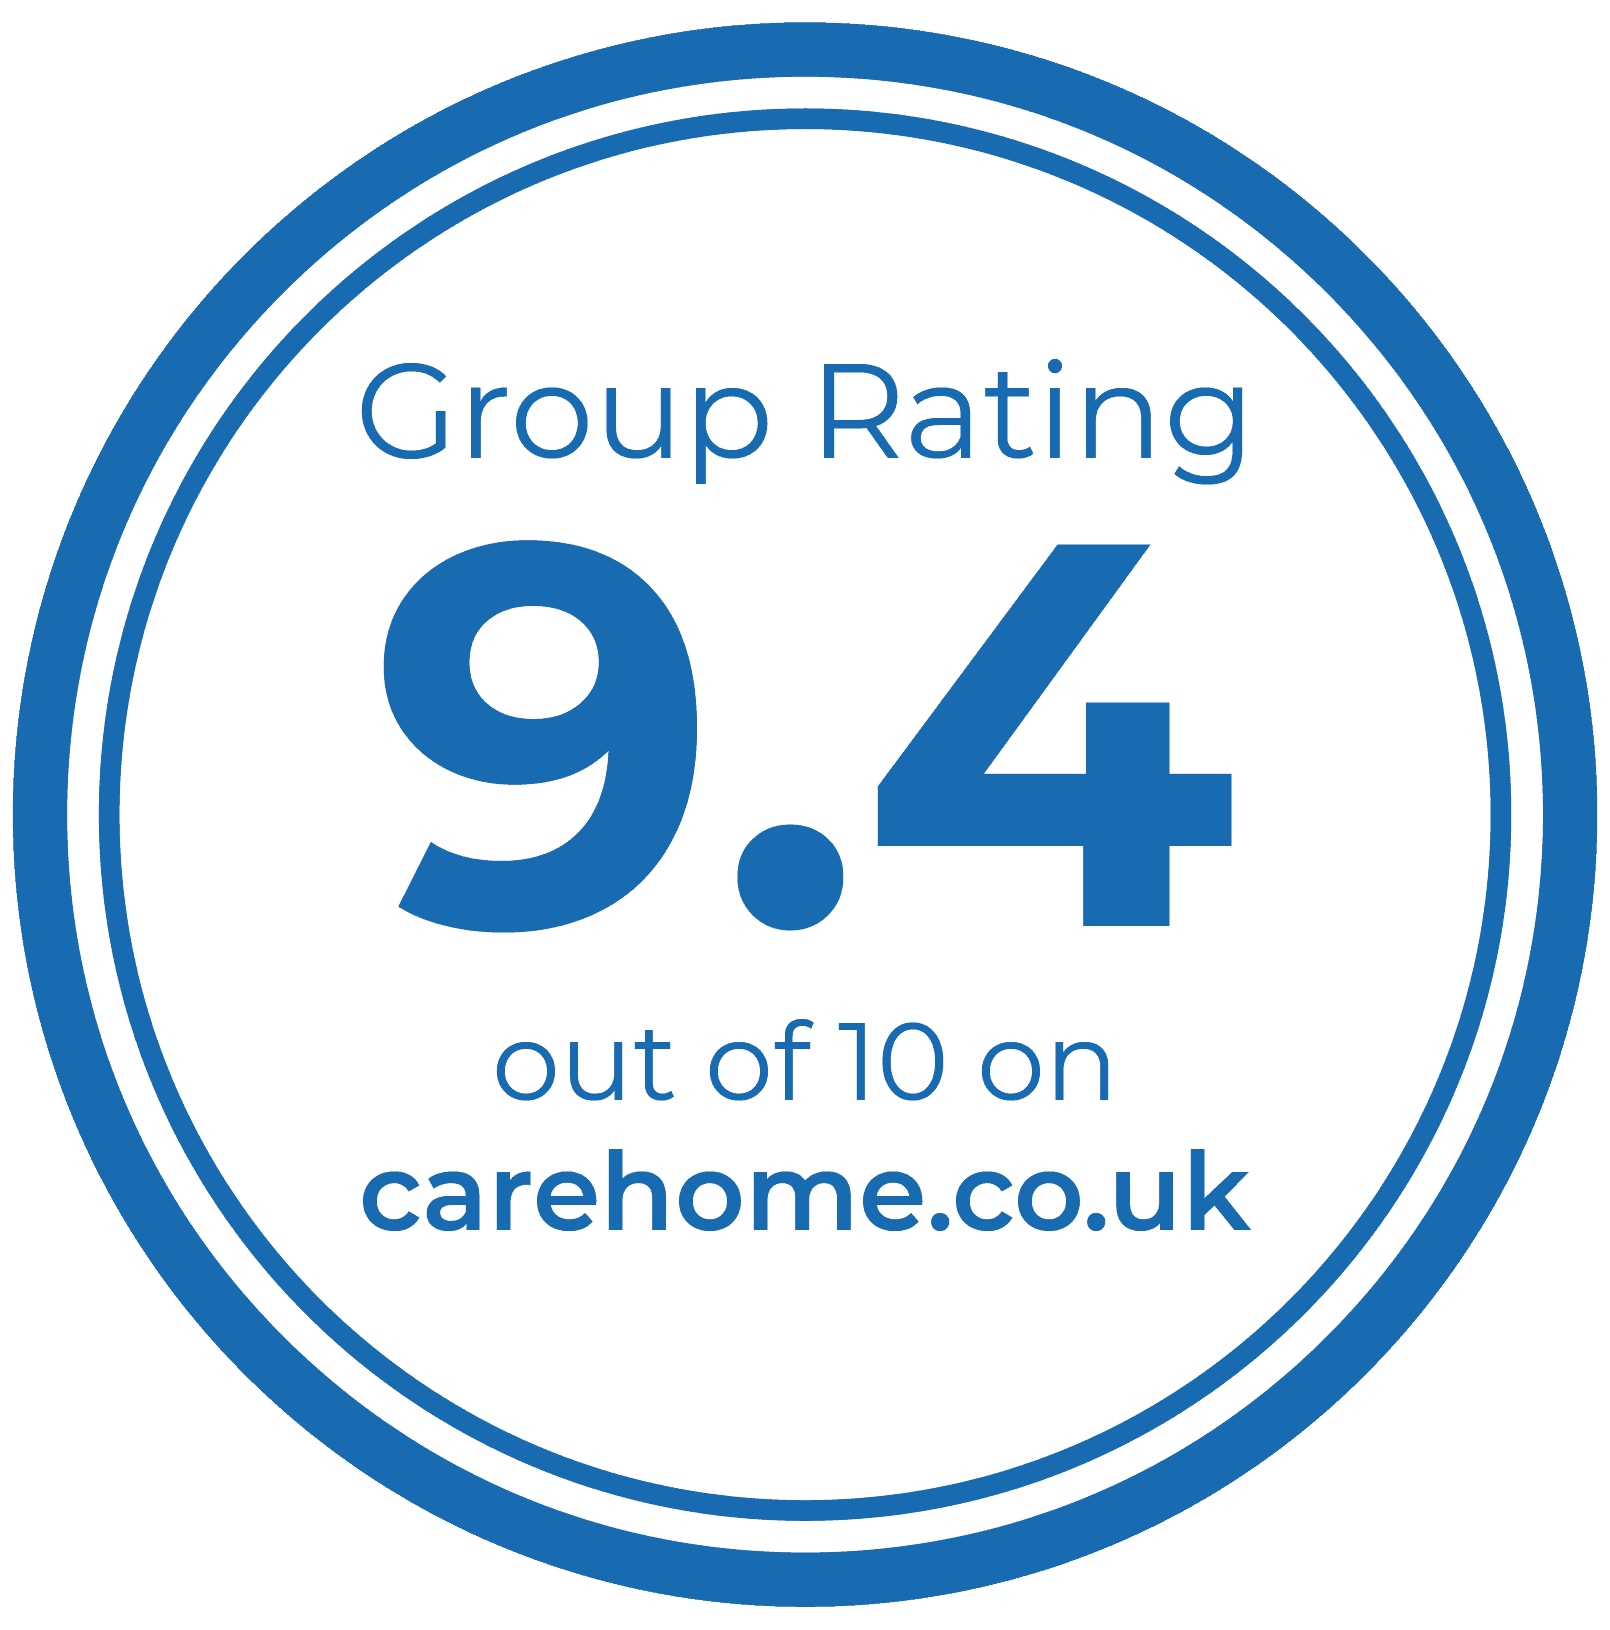 carehome.co.uk rating badge